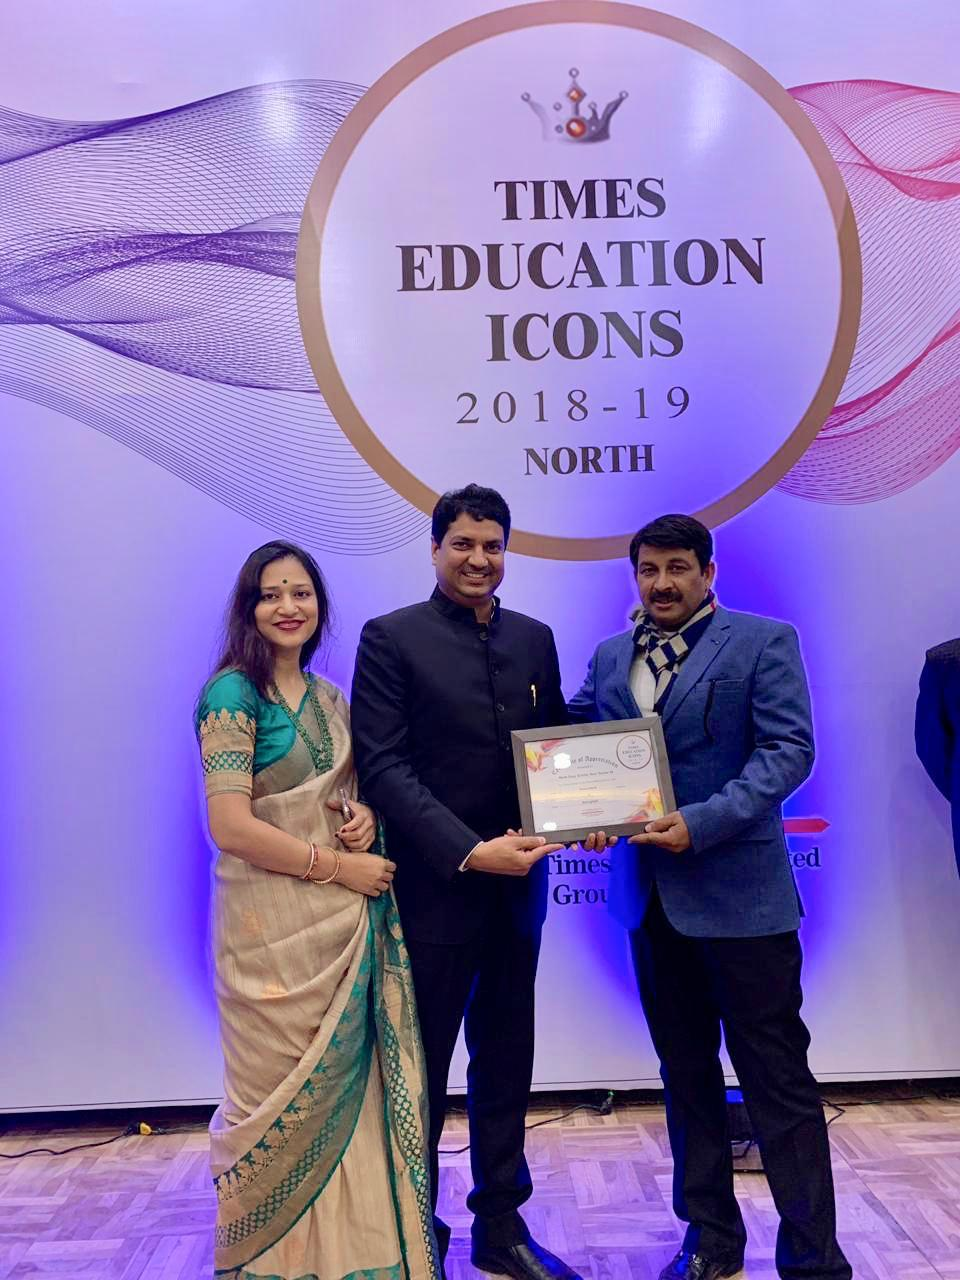 Times Education Icons award